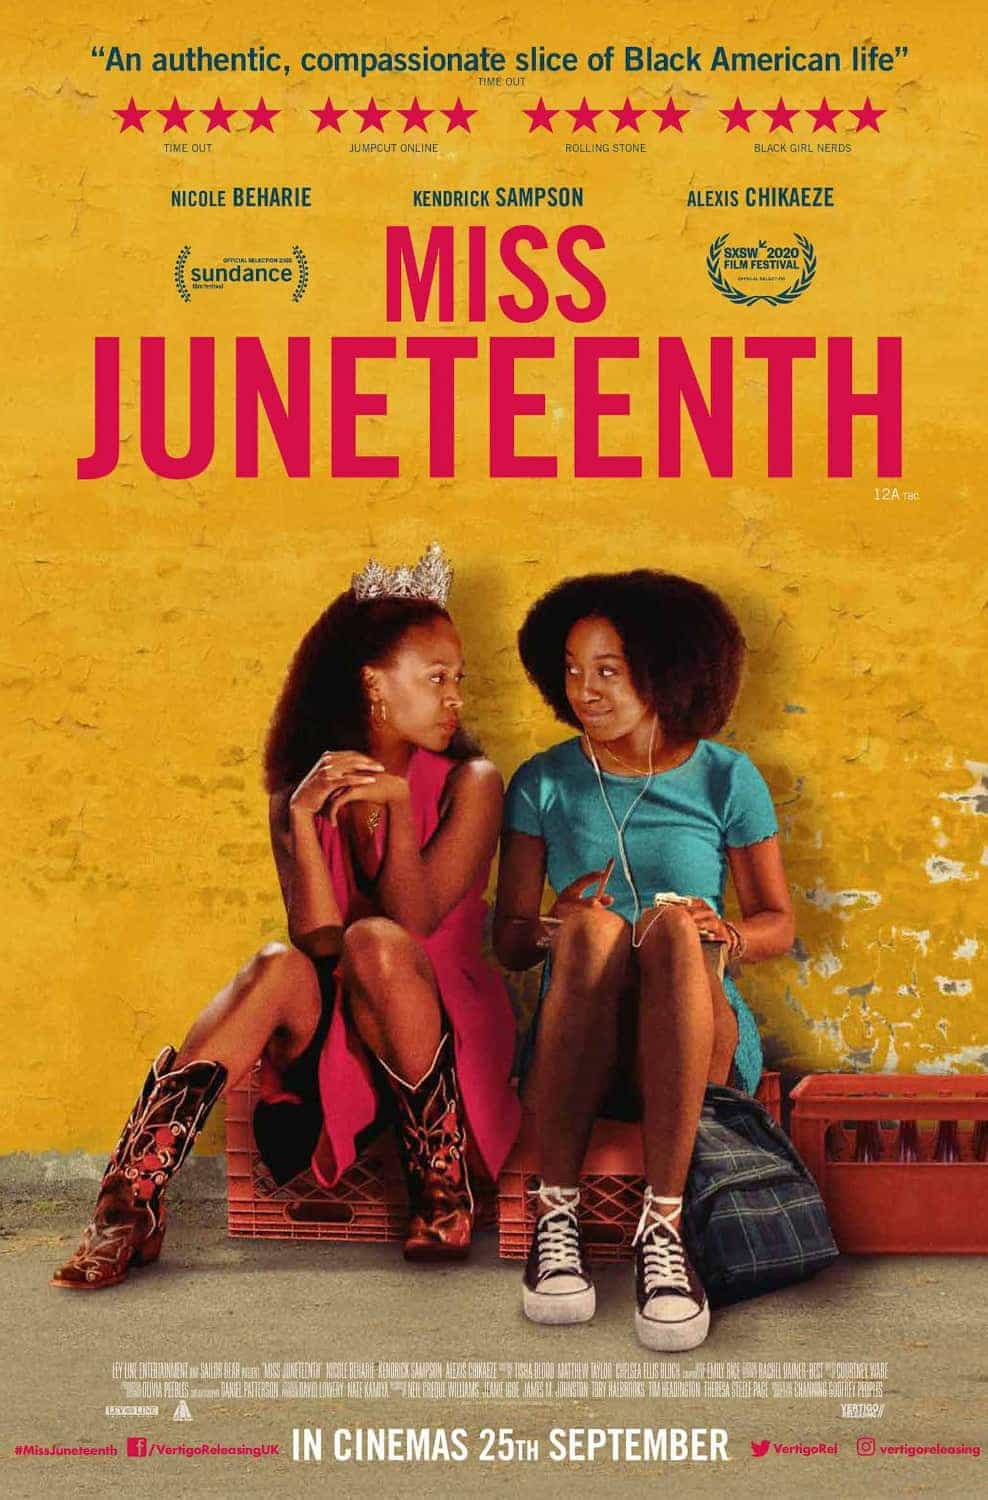 Miss Juneteenth is given a 15 age rating in the UK for strong language